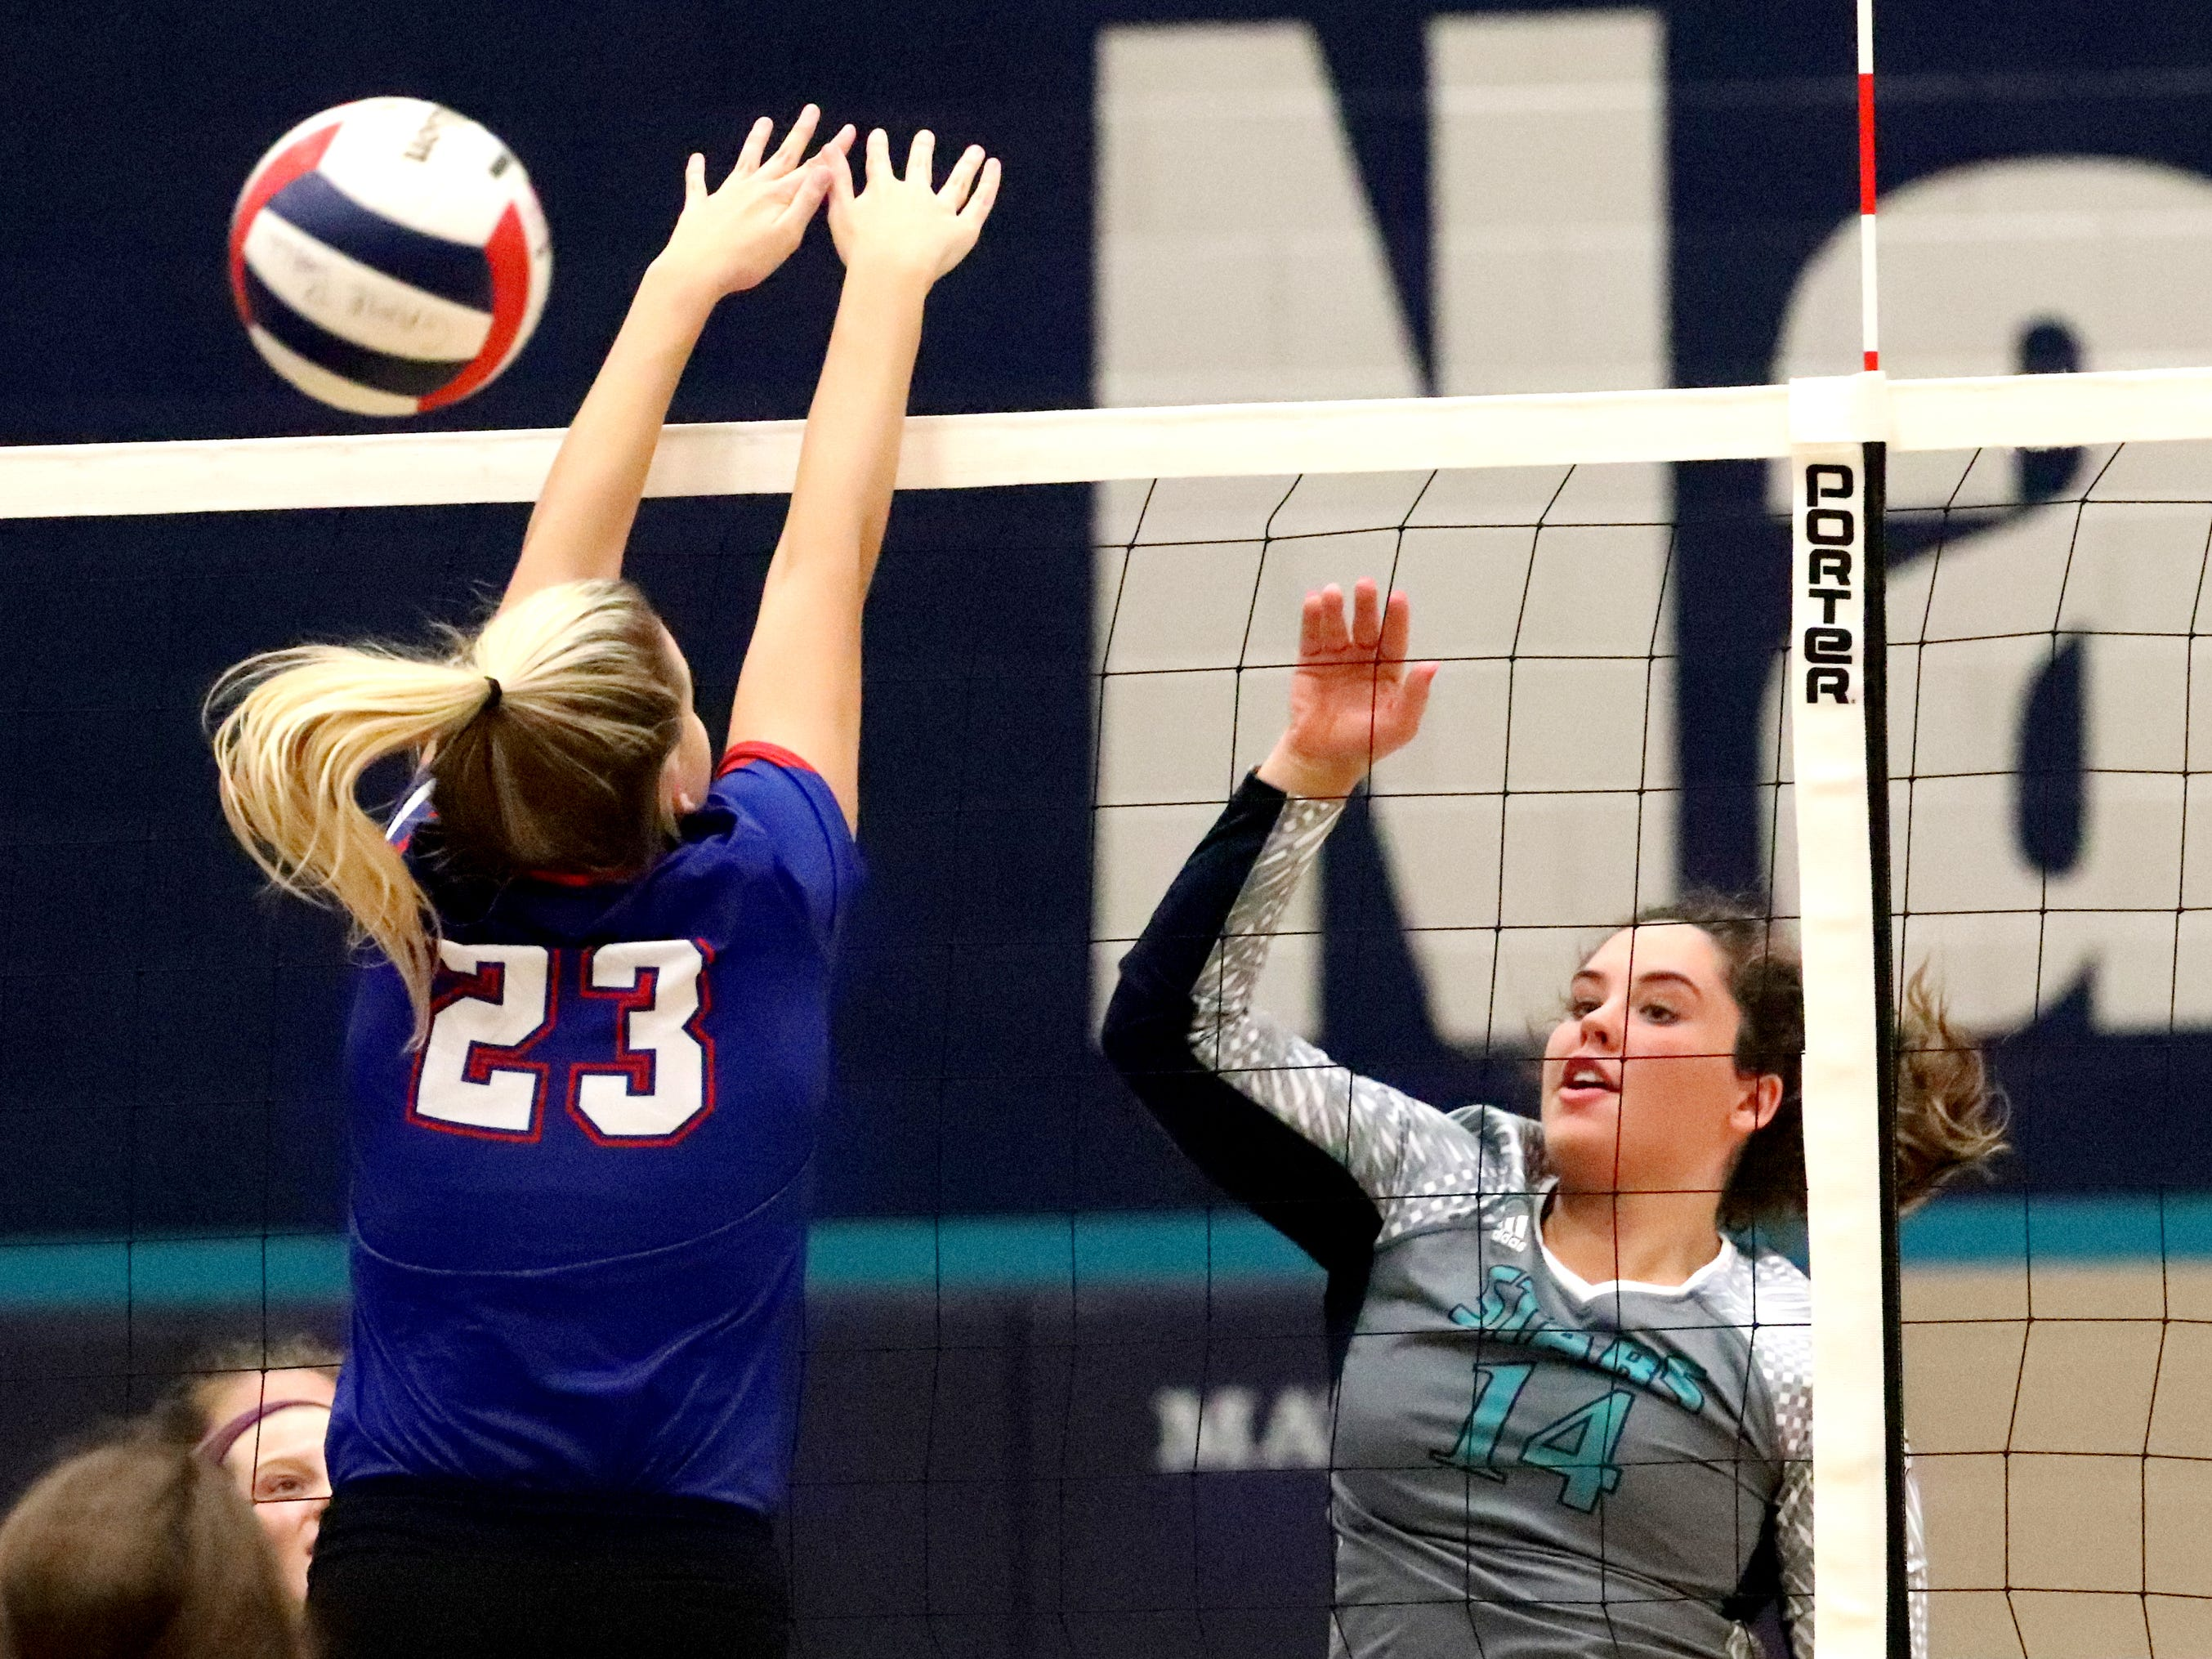 Siegel's Sydney Taylor (14) hits the ball over the net during the Class AAA sectional against Cleveland Thursday, Oct. 11, 2018. Siegel beat Cleveland to advance to the State Championship tournament.